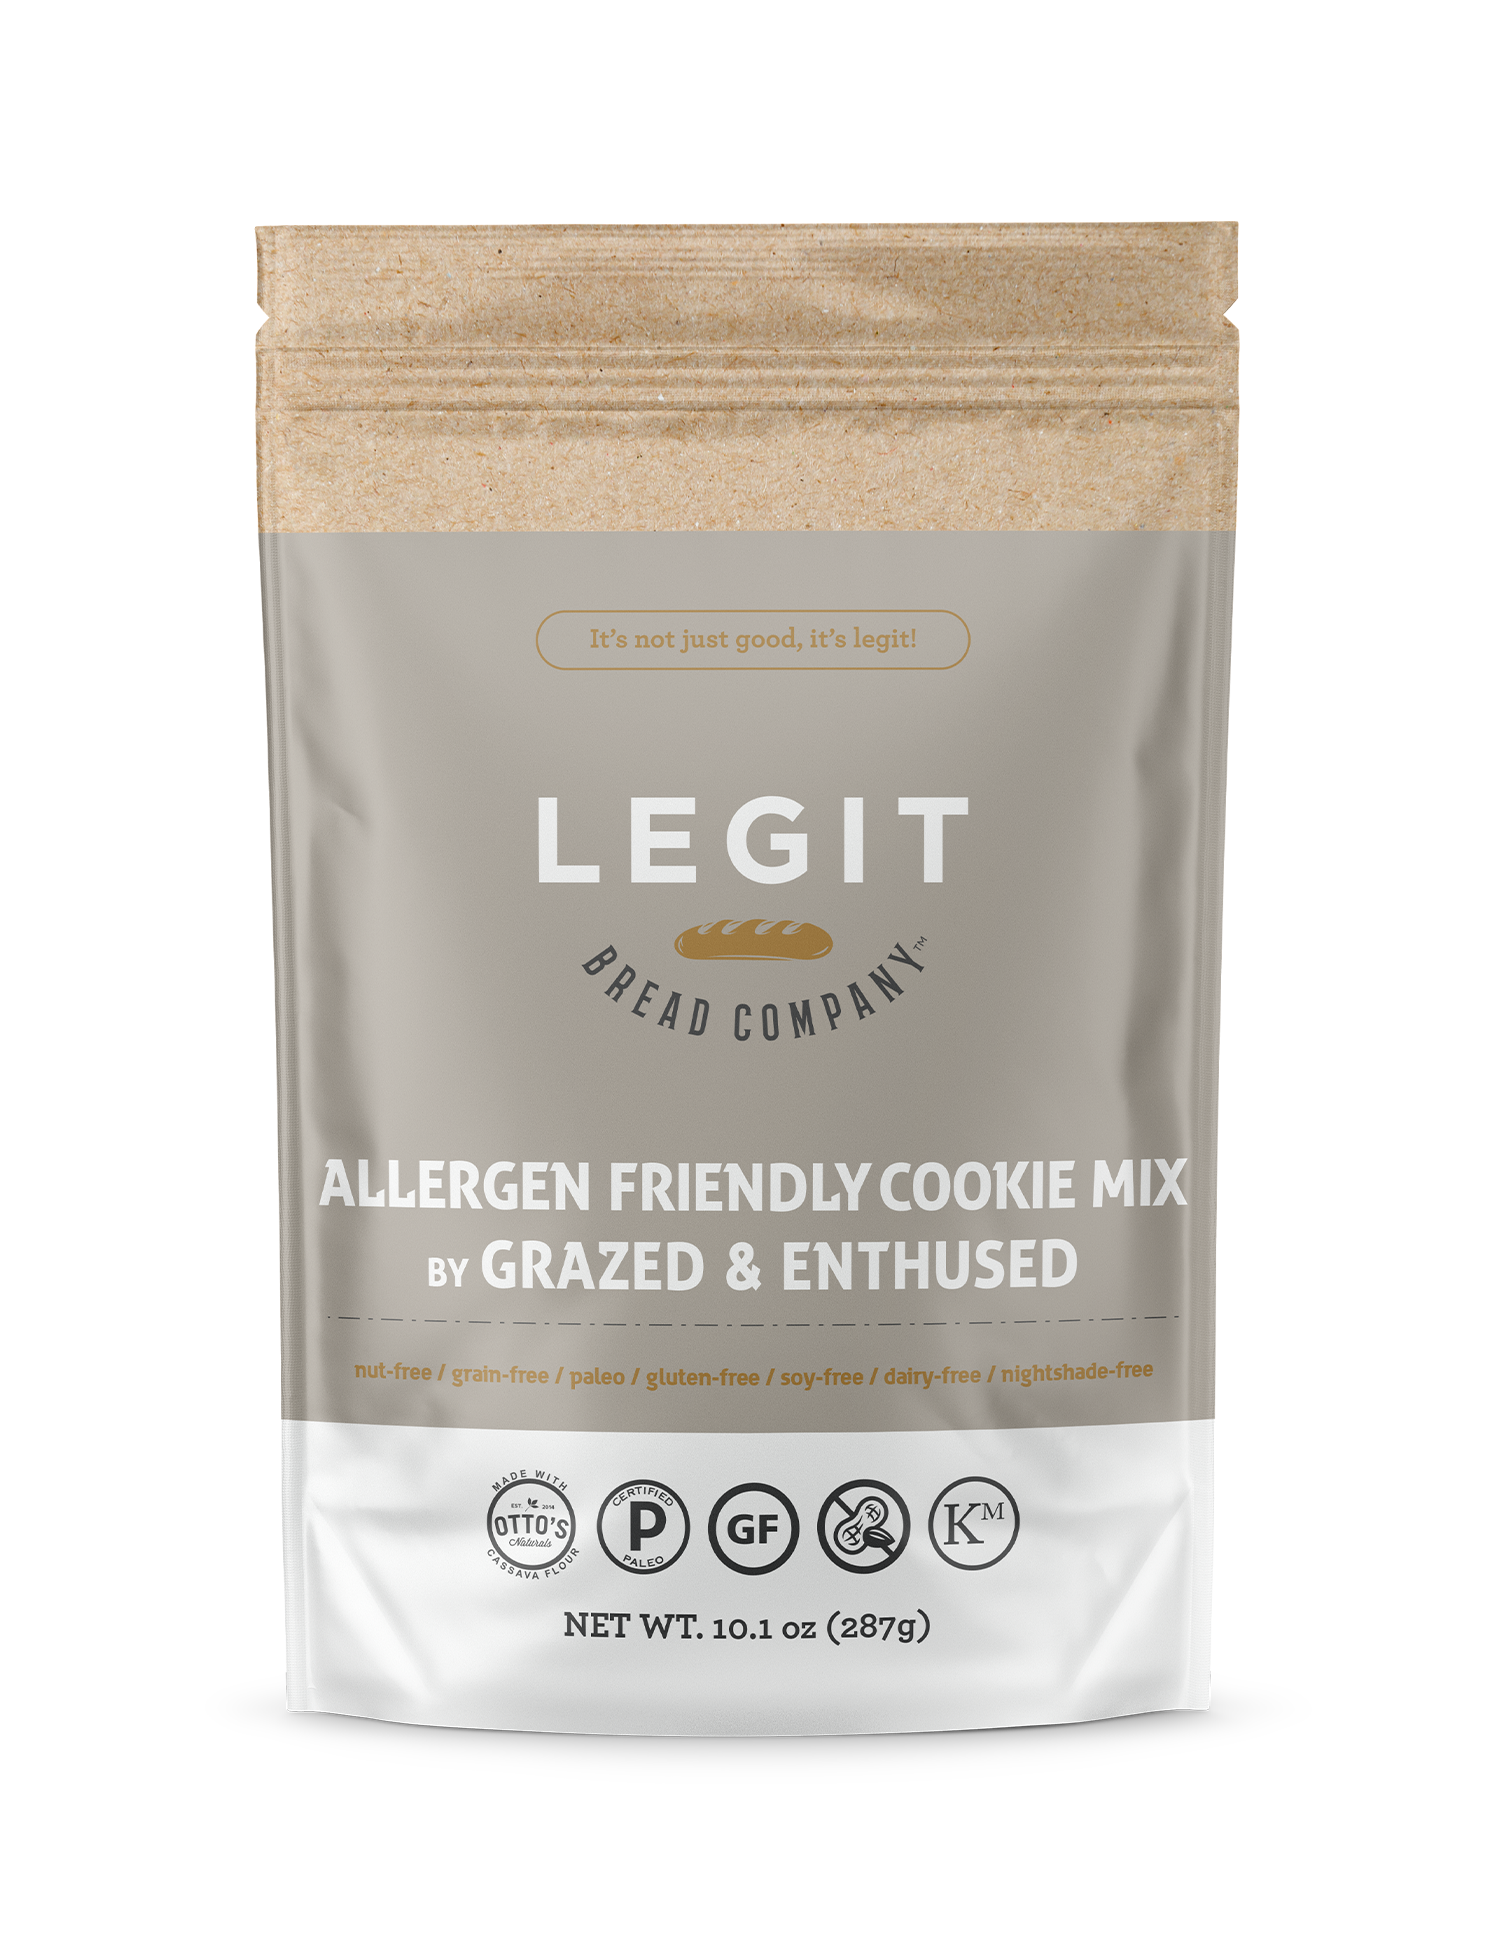 AIP Gluten Free Cookie Mix